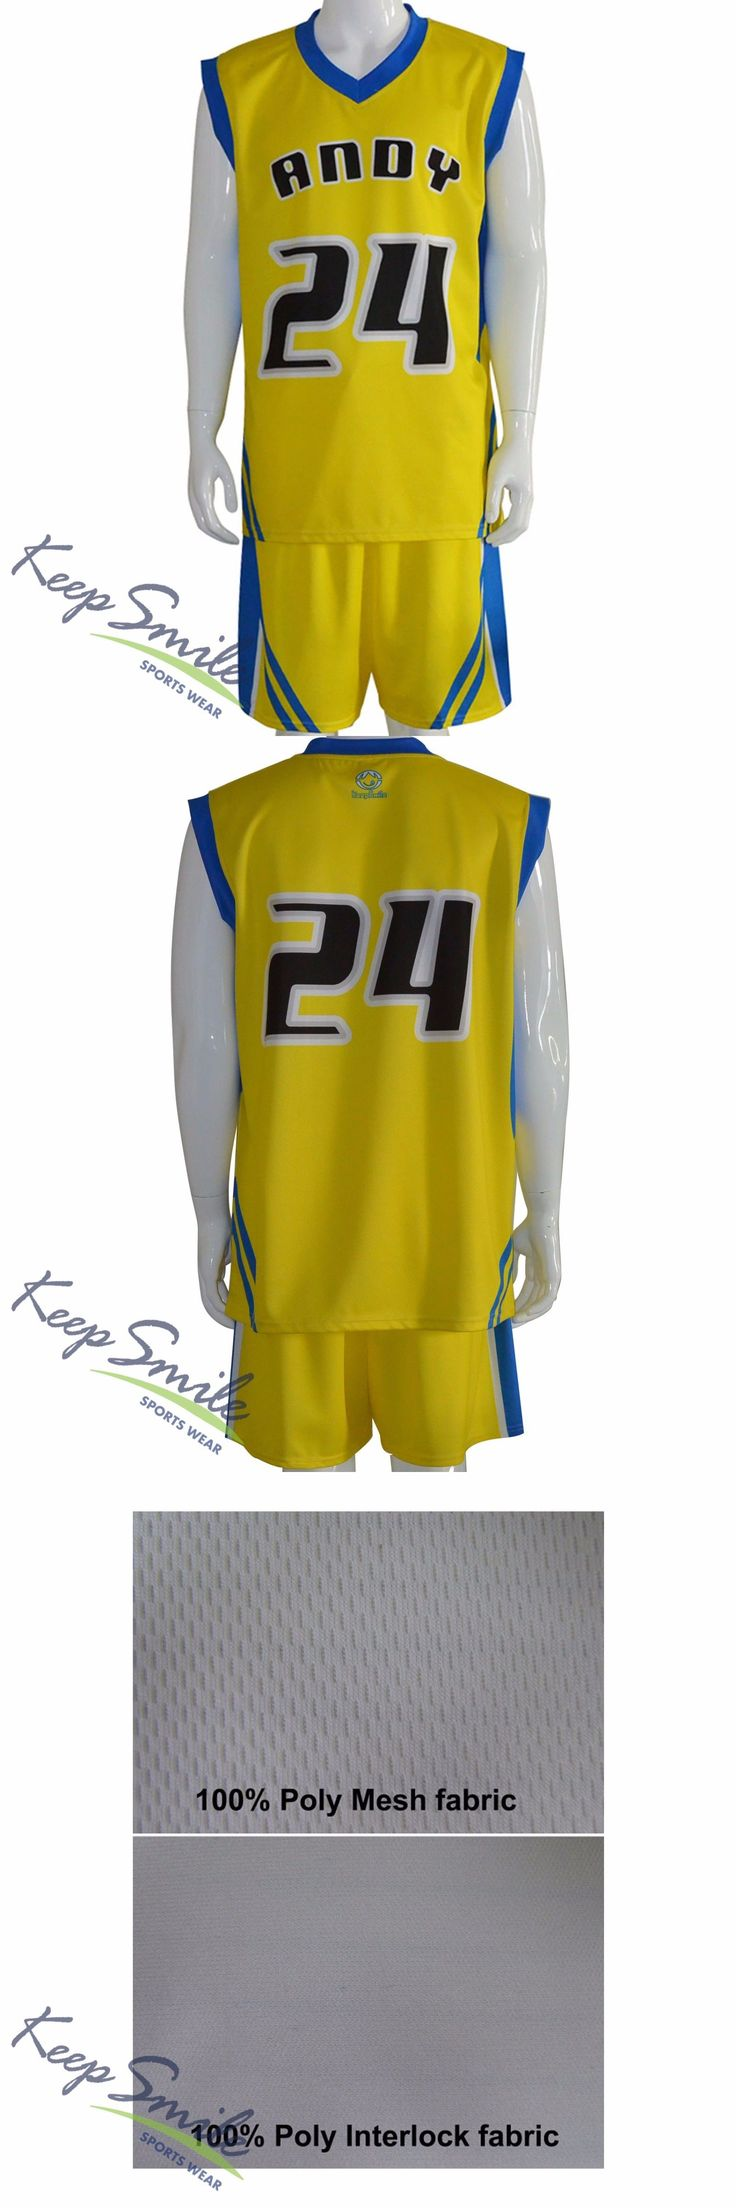 Women 158966: 20 Set Custom Sublimated Youth Girl'S Basketball Team Uniform Jersey And Short -> BUY IT NOW ONLY: $539.99 on eBay!